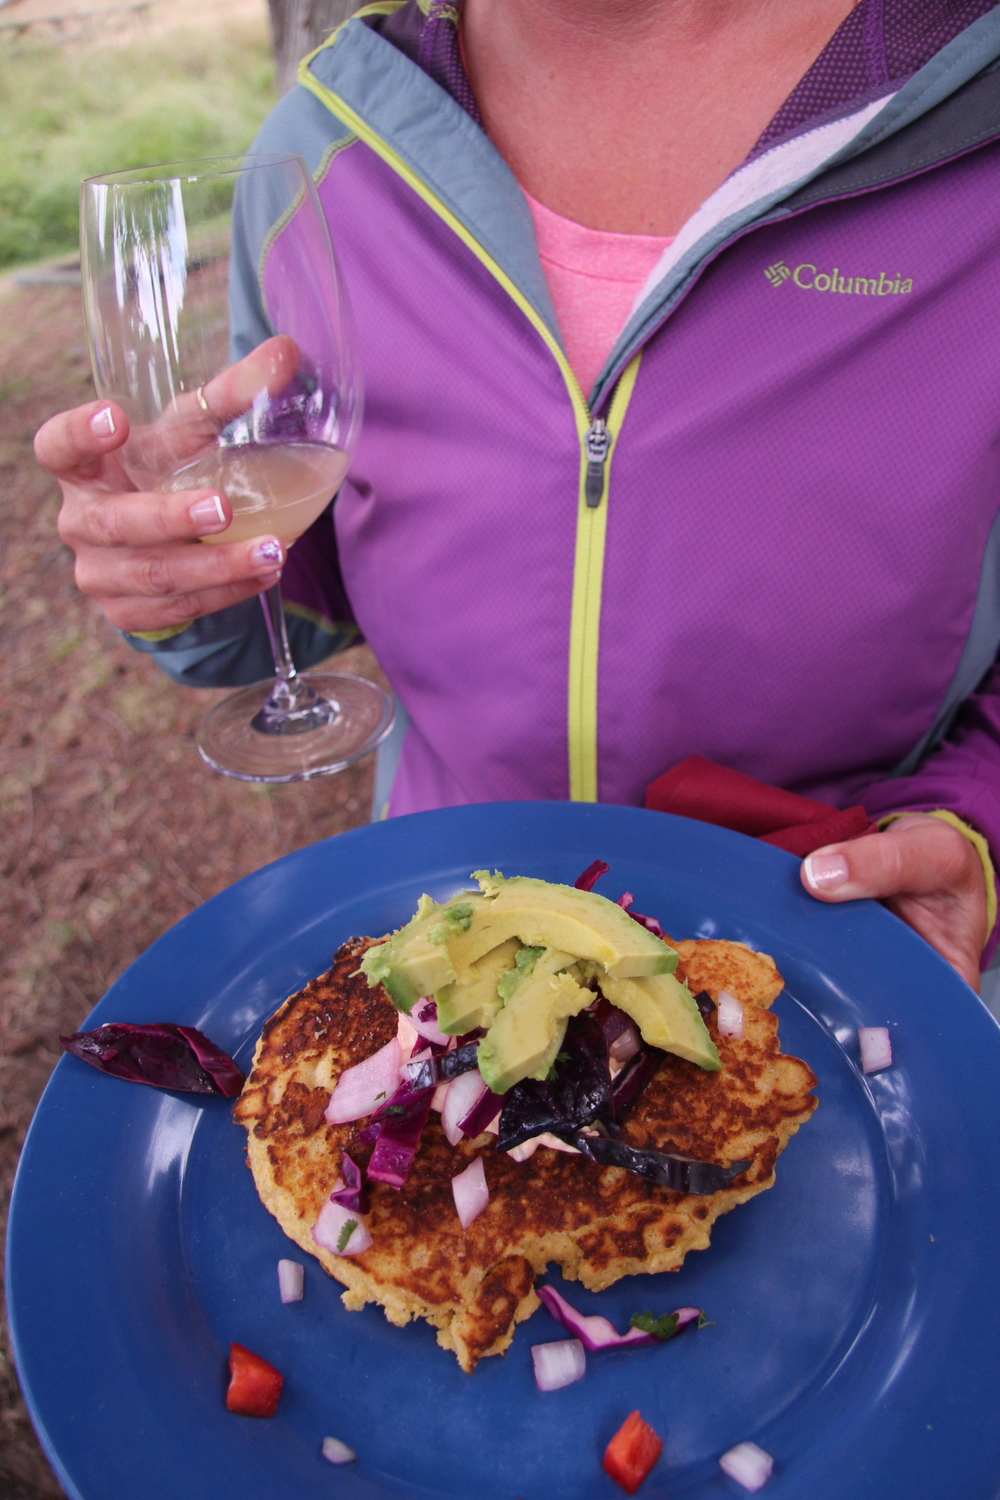 grilled corn cakes with slaw, avocado and chipotle sour cream… enjoyed with unfiltered Chardonnay in the San Juan Islands